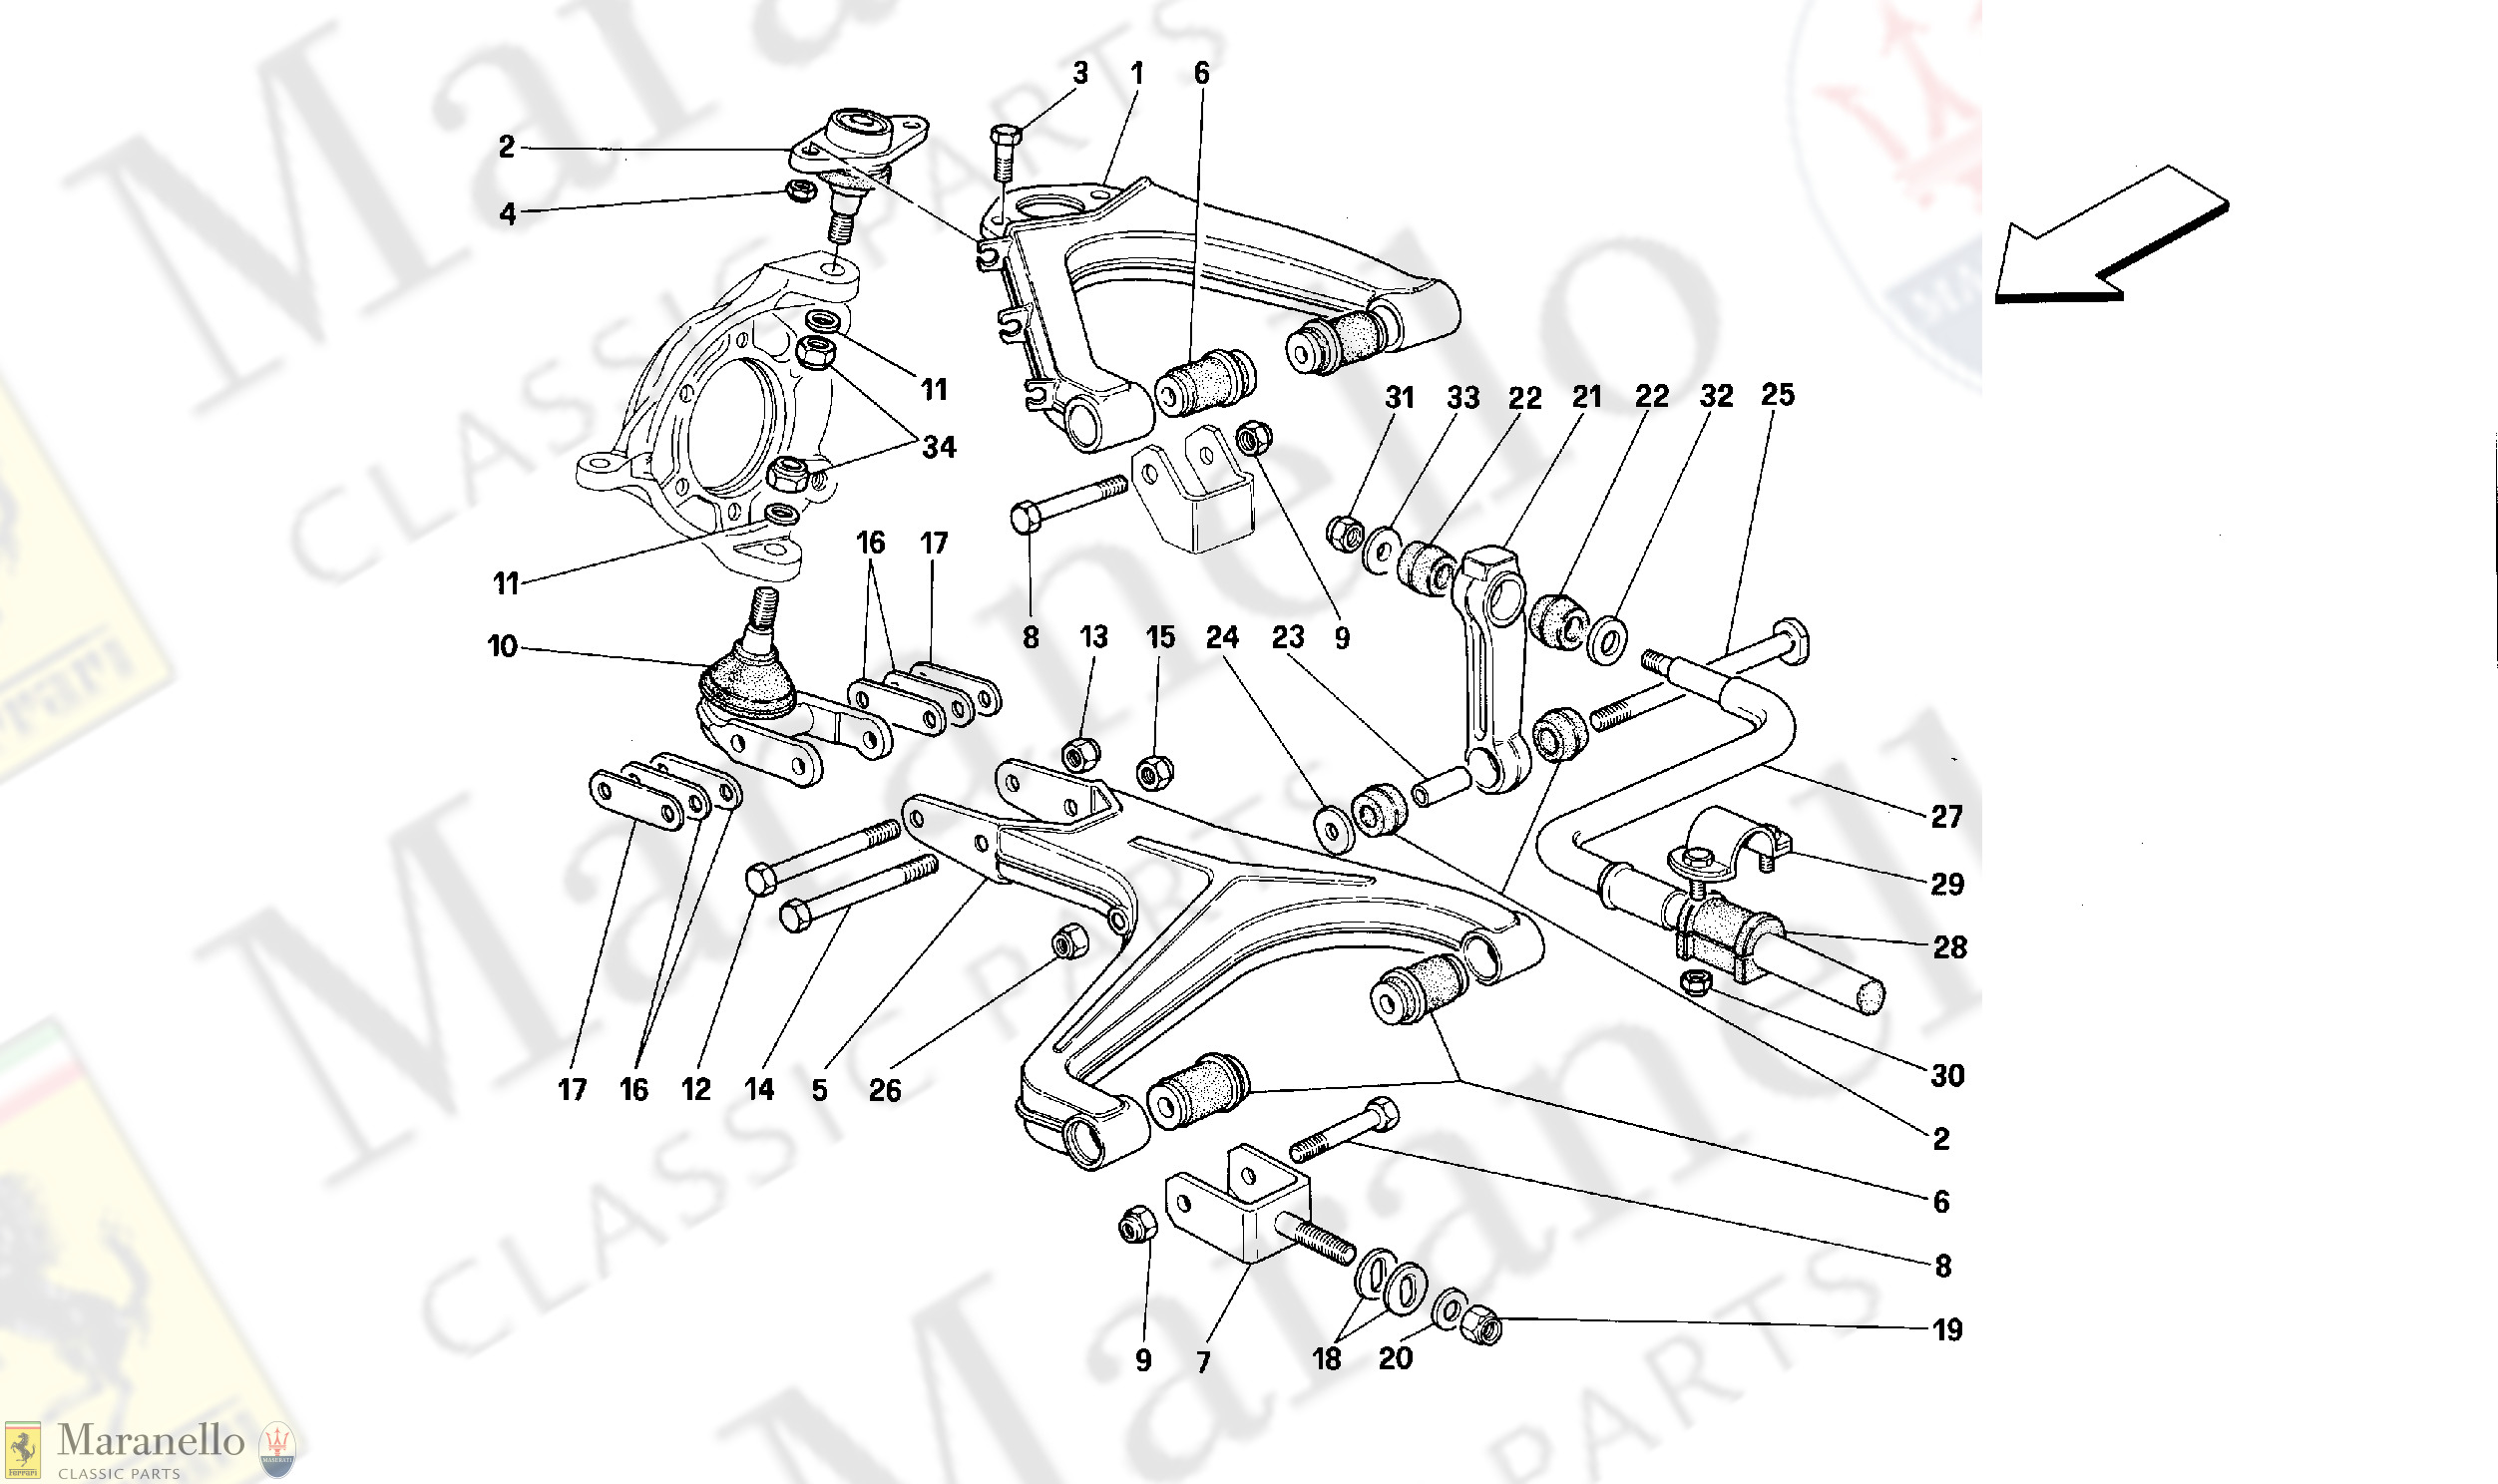 053 - Front Suspension - Wishbones